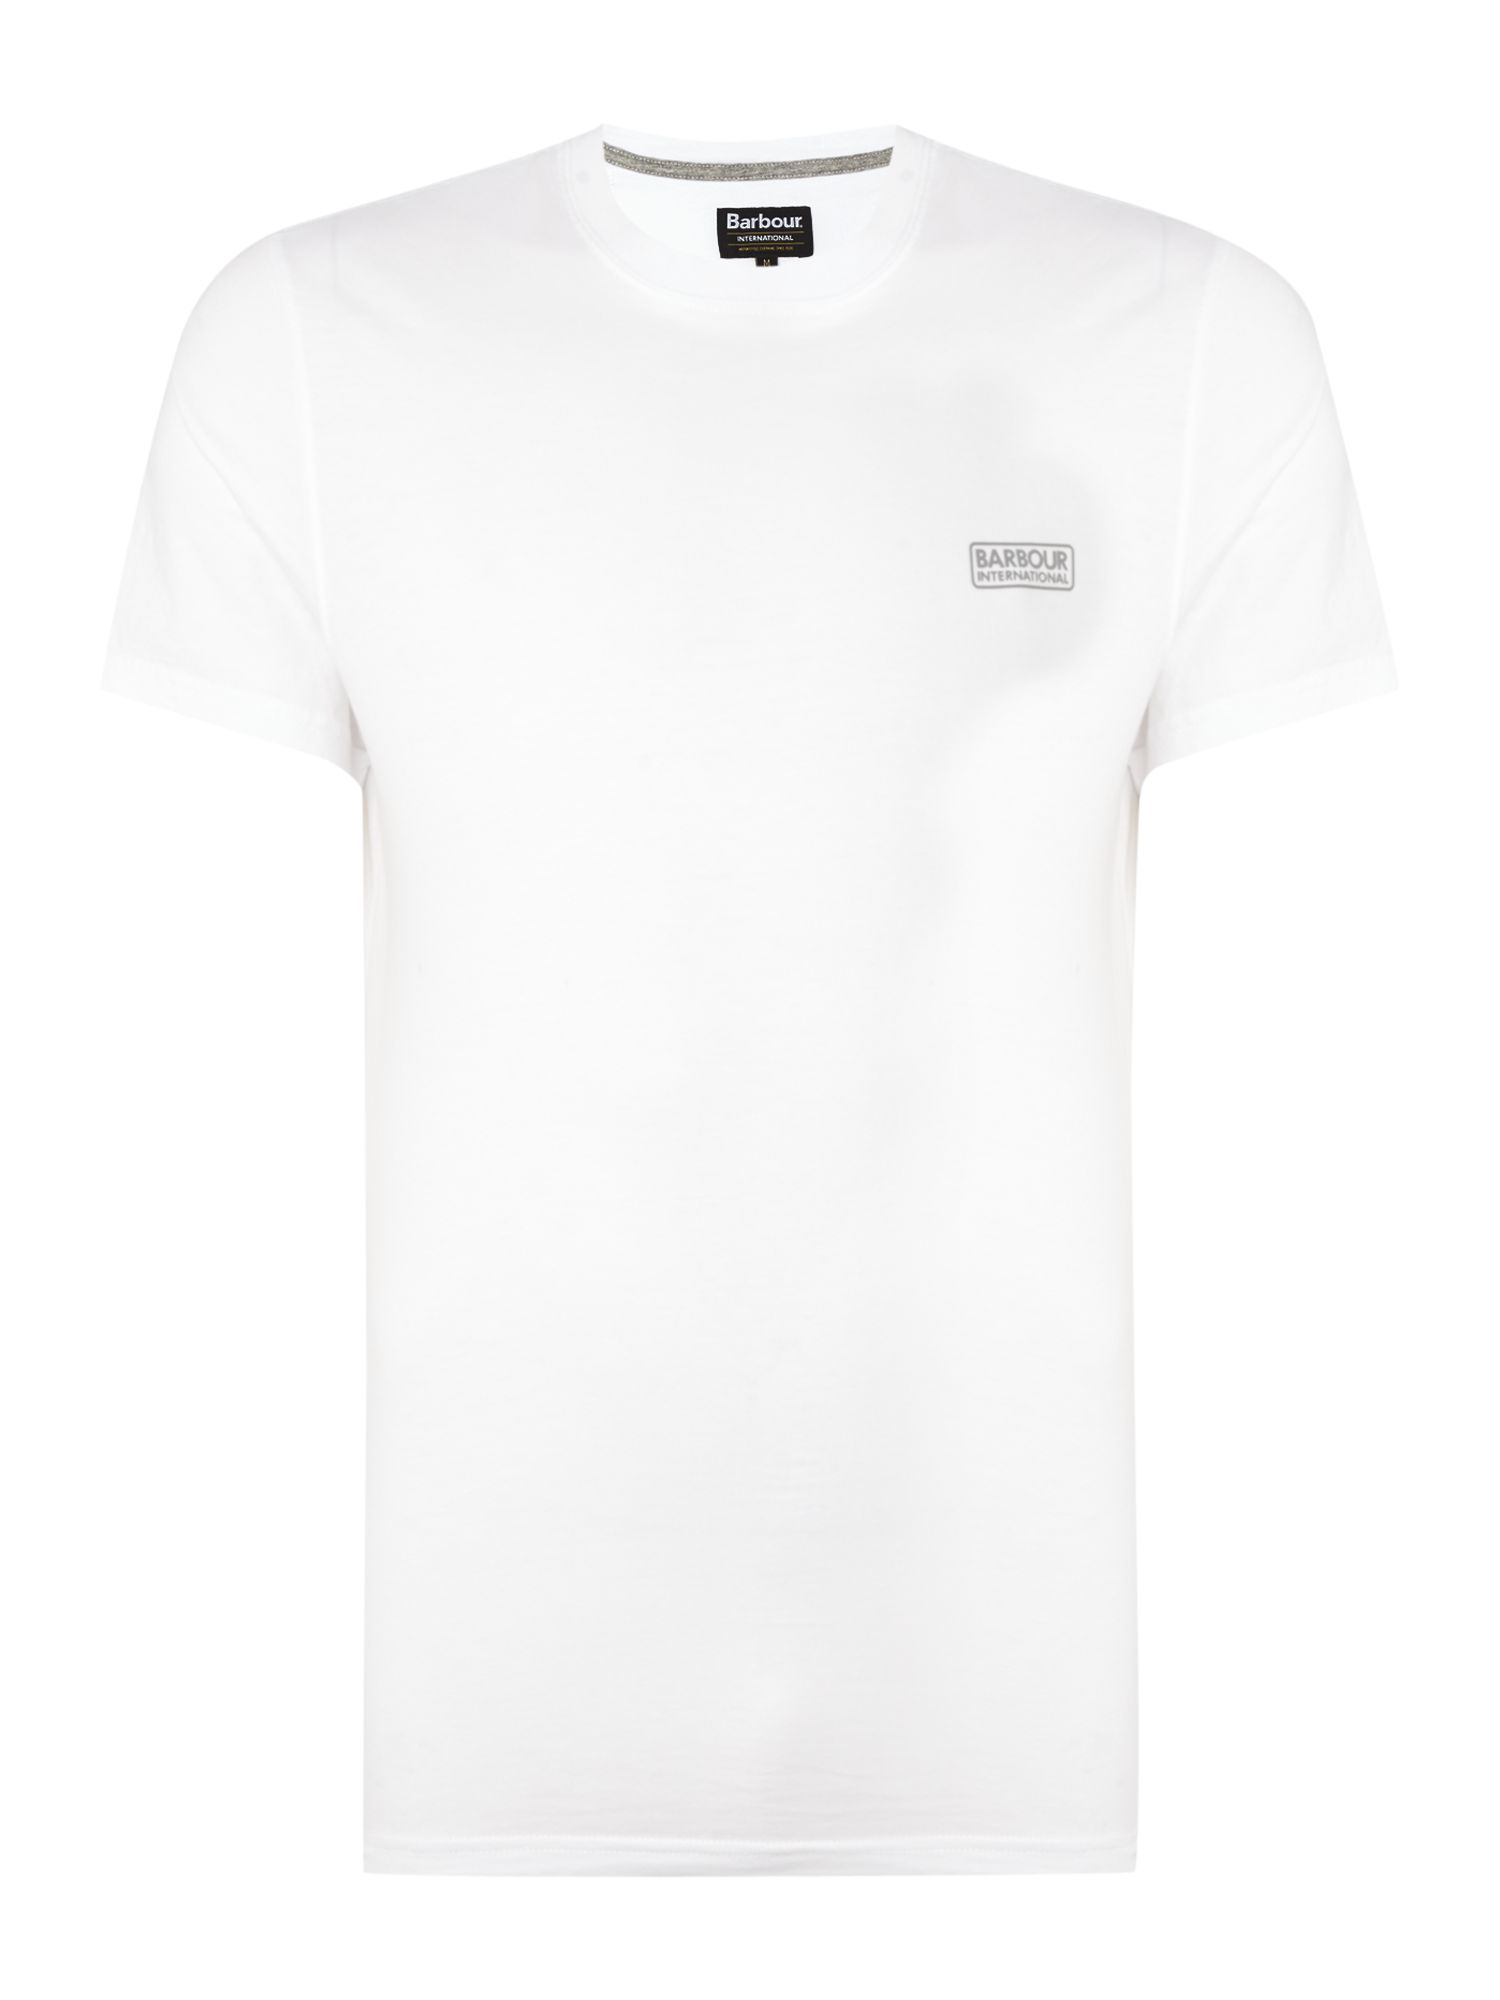 Men's Barbour International small logo T-Shirt, White